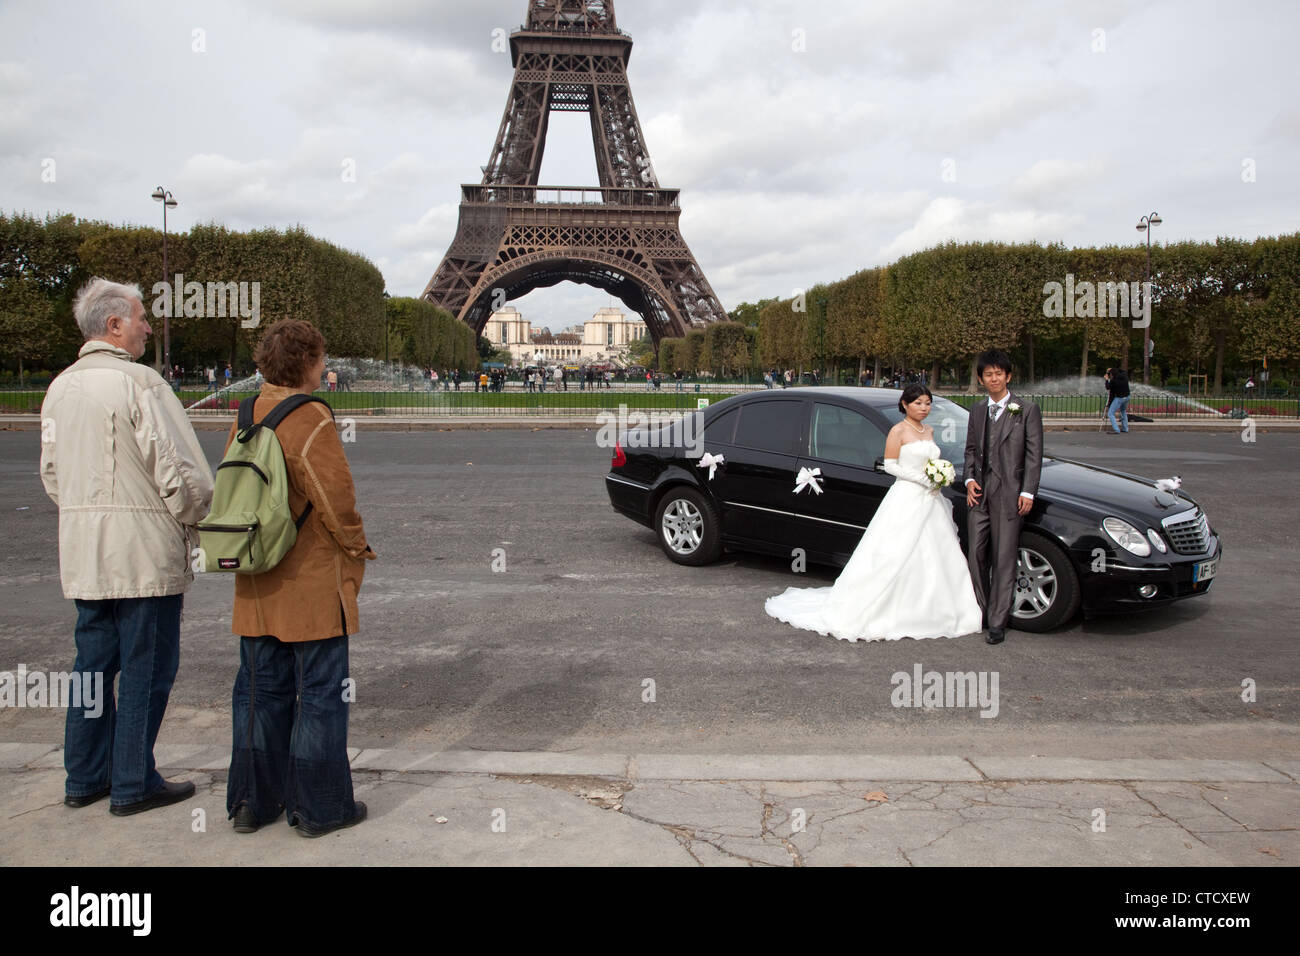 Foreign tourist look at a Chinese couple posing to wedding photos in the Field of Mars near Eiffel Tower in Paris, - Stock Image